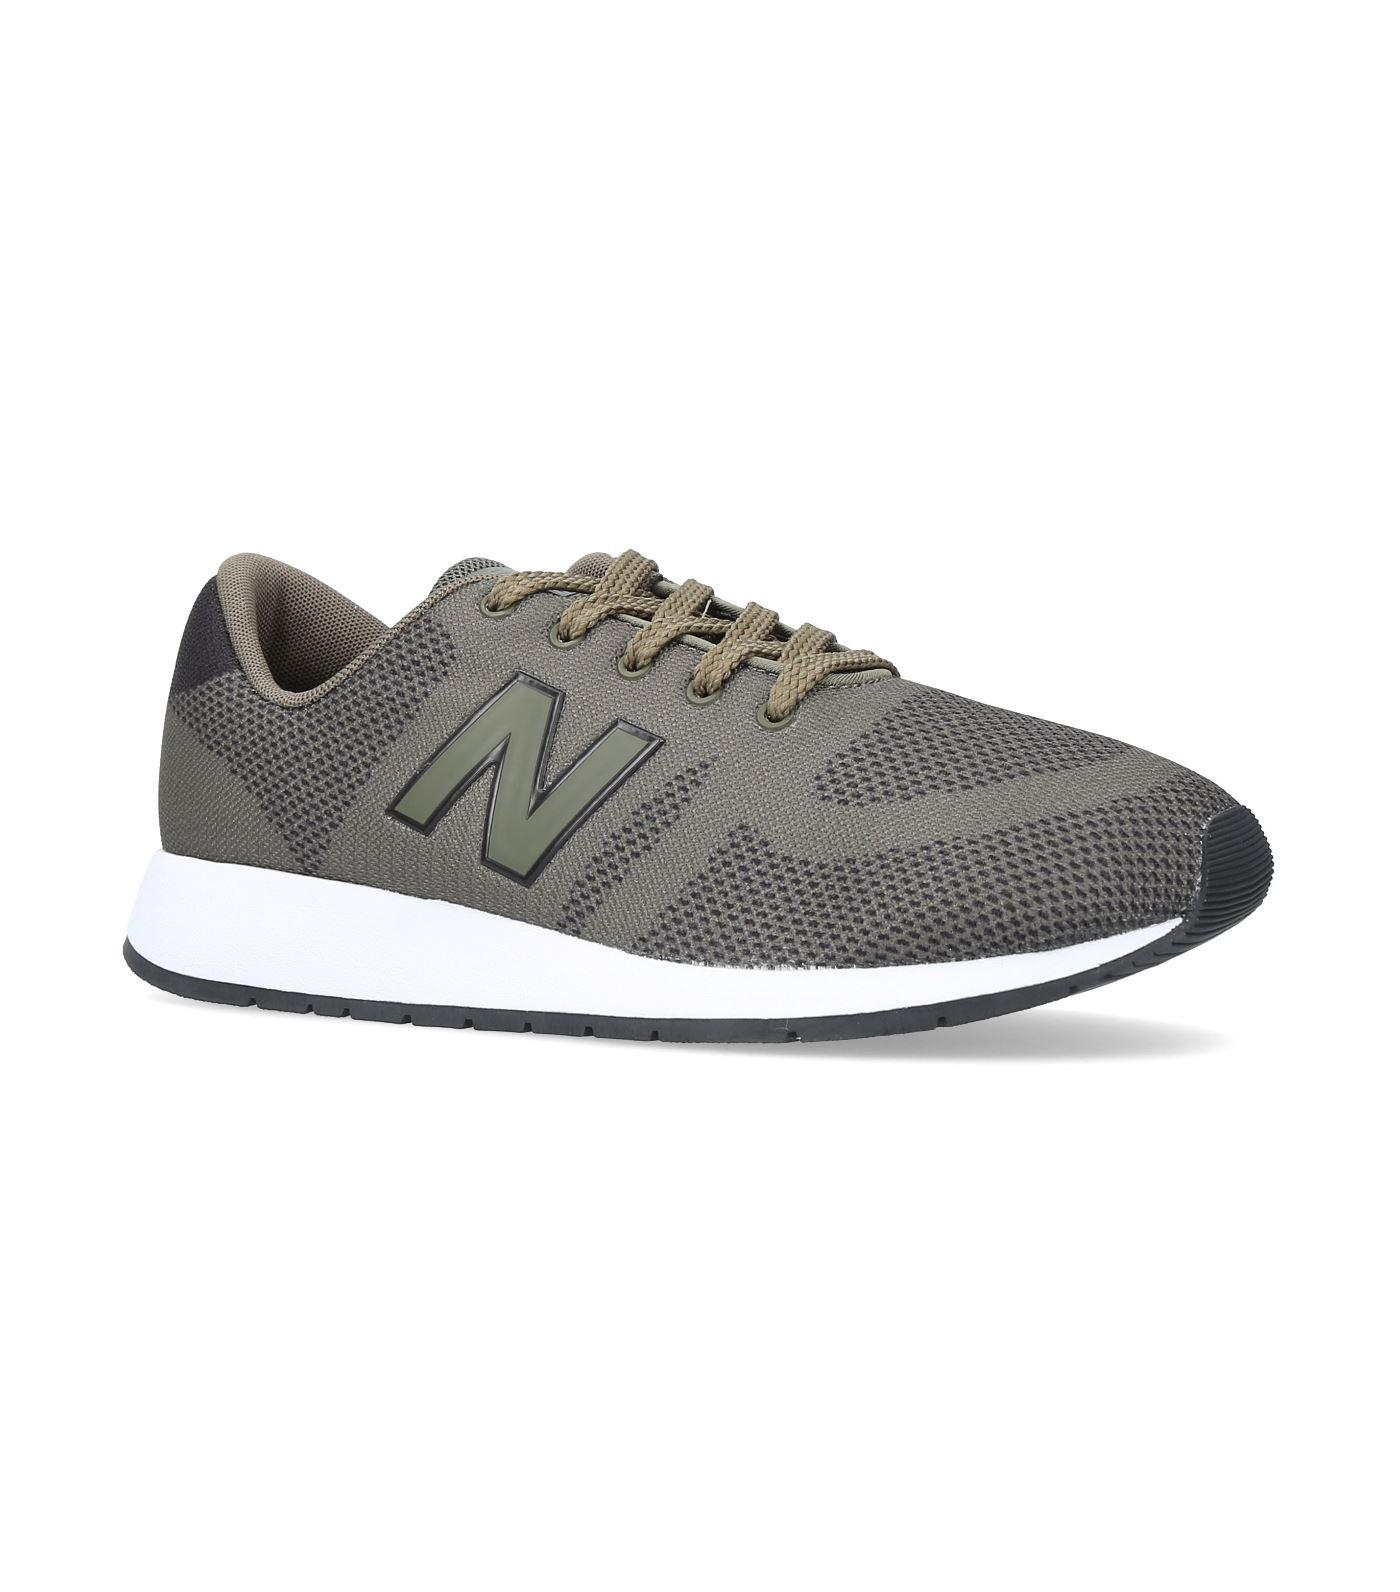 New Balance 420 Hybrid Sneakers In Green